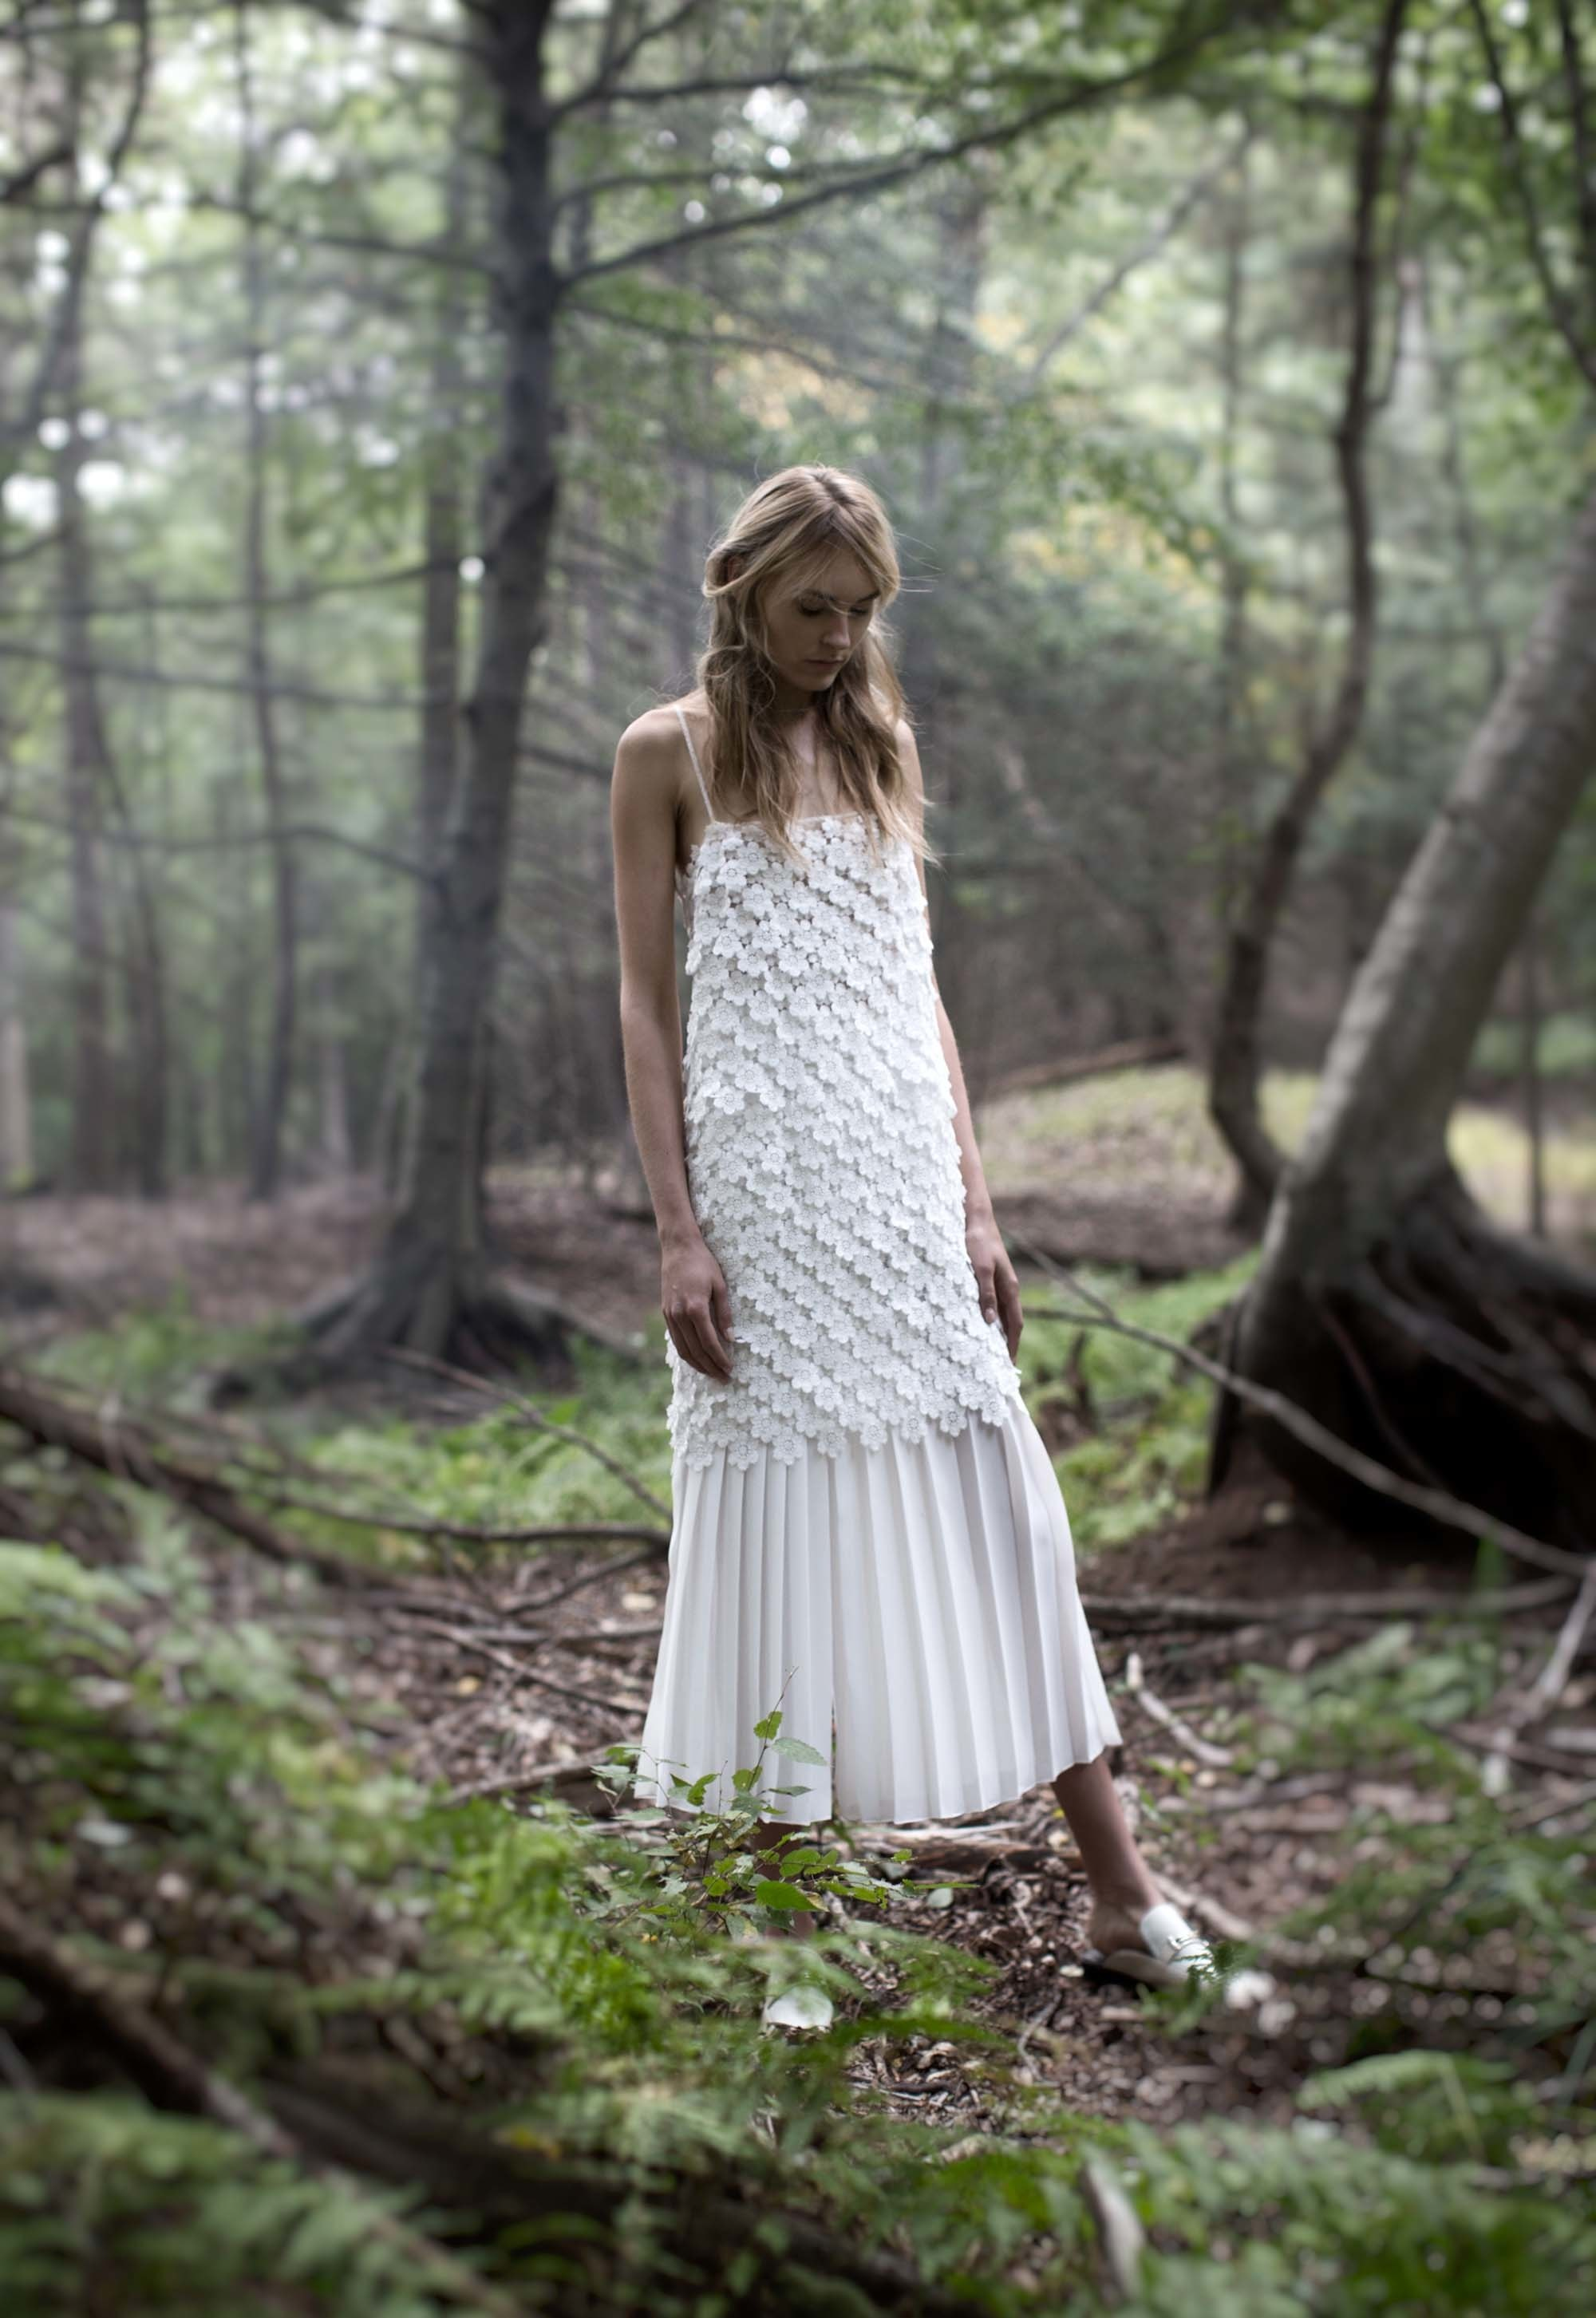 25-by-bonnie-young-spring-2017-rtw.jpg